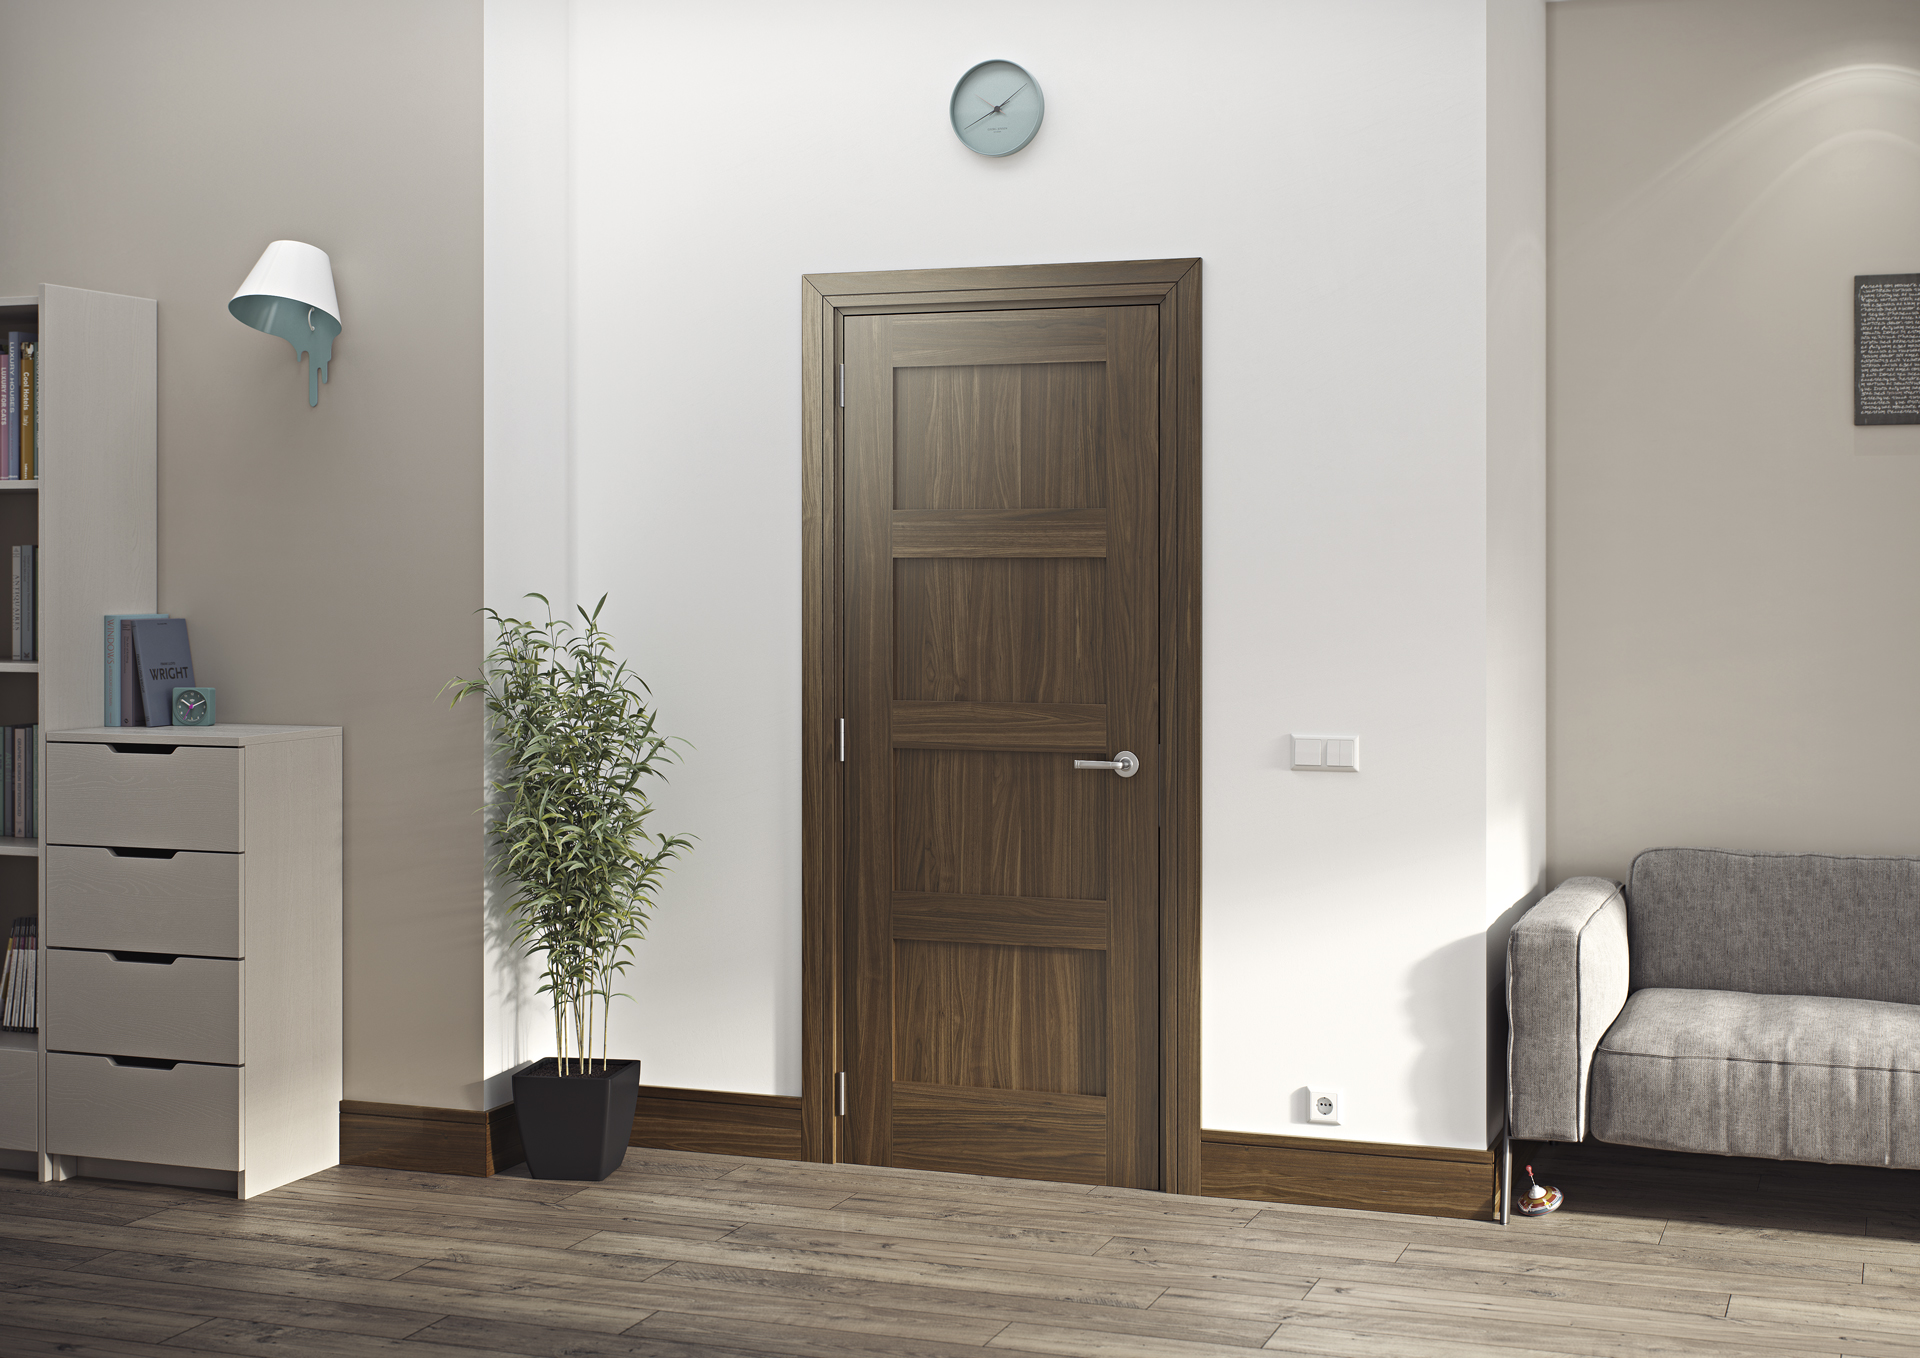 Coventry Walnut interior door & Choosing the Right Doors for your Home | Deanta